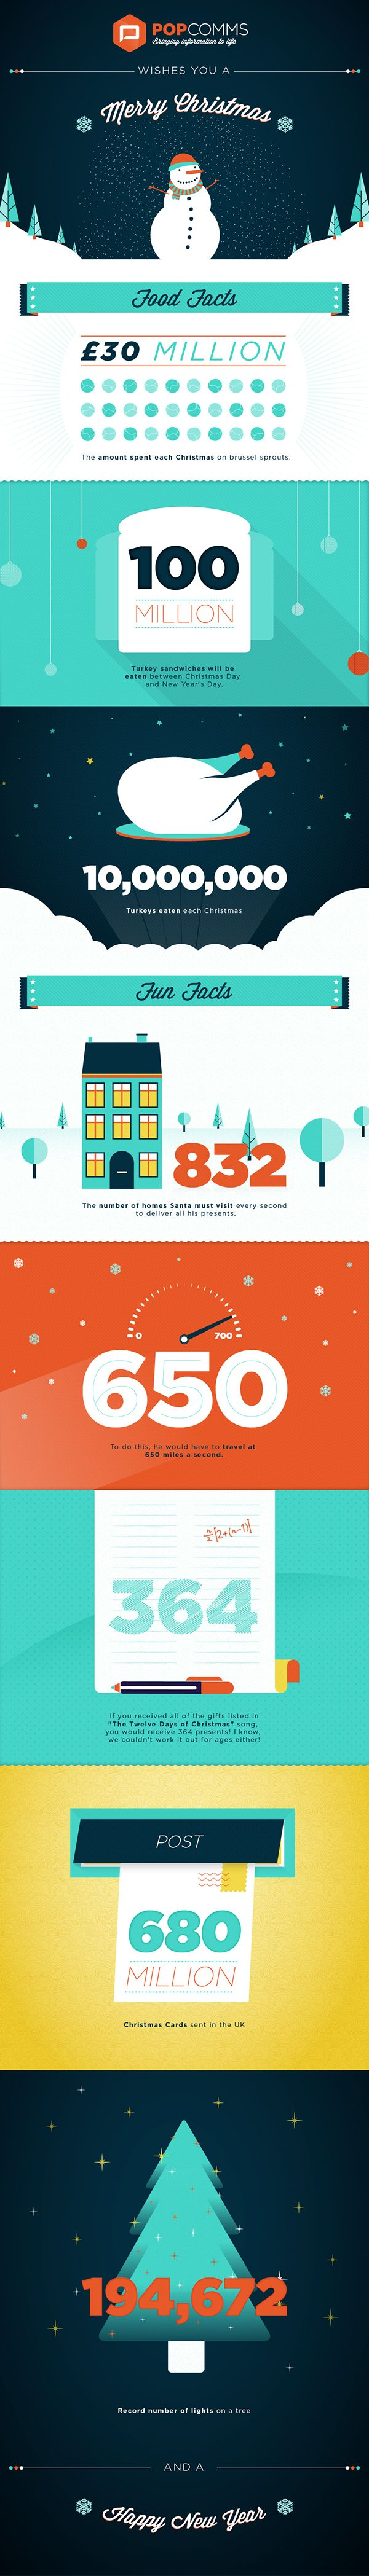 Creative Direction, Design and Illustrations for POPcomms Christmas e-card infographic  Designed at POPcomms. © POPcomms Ltd 2013.